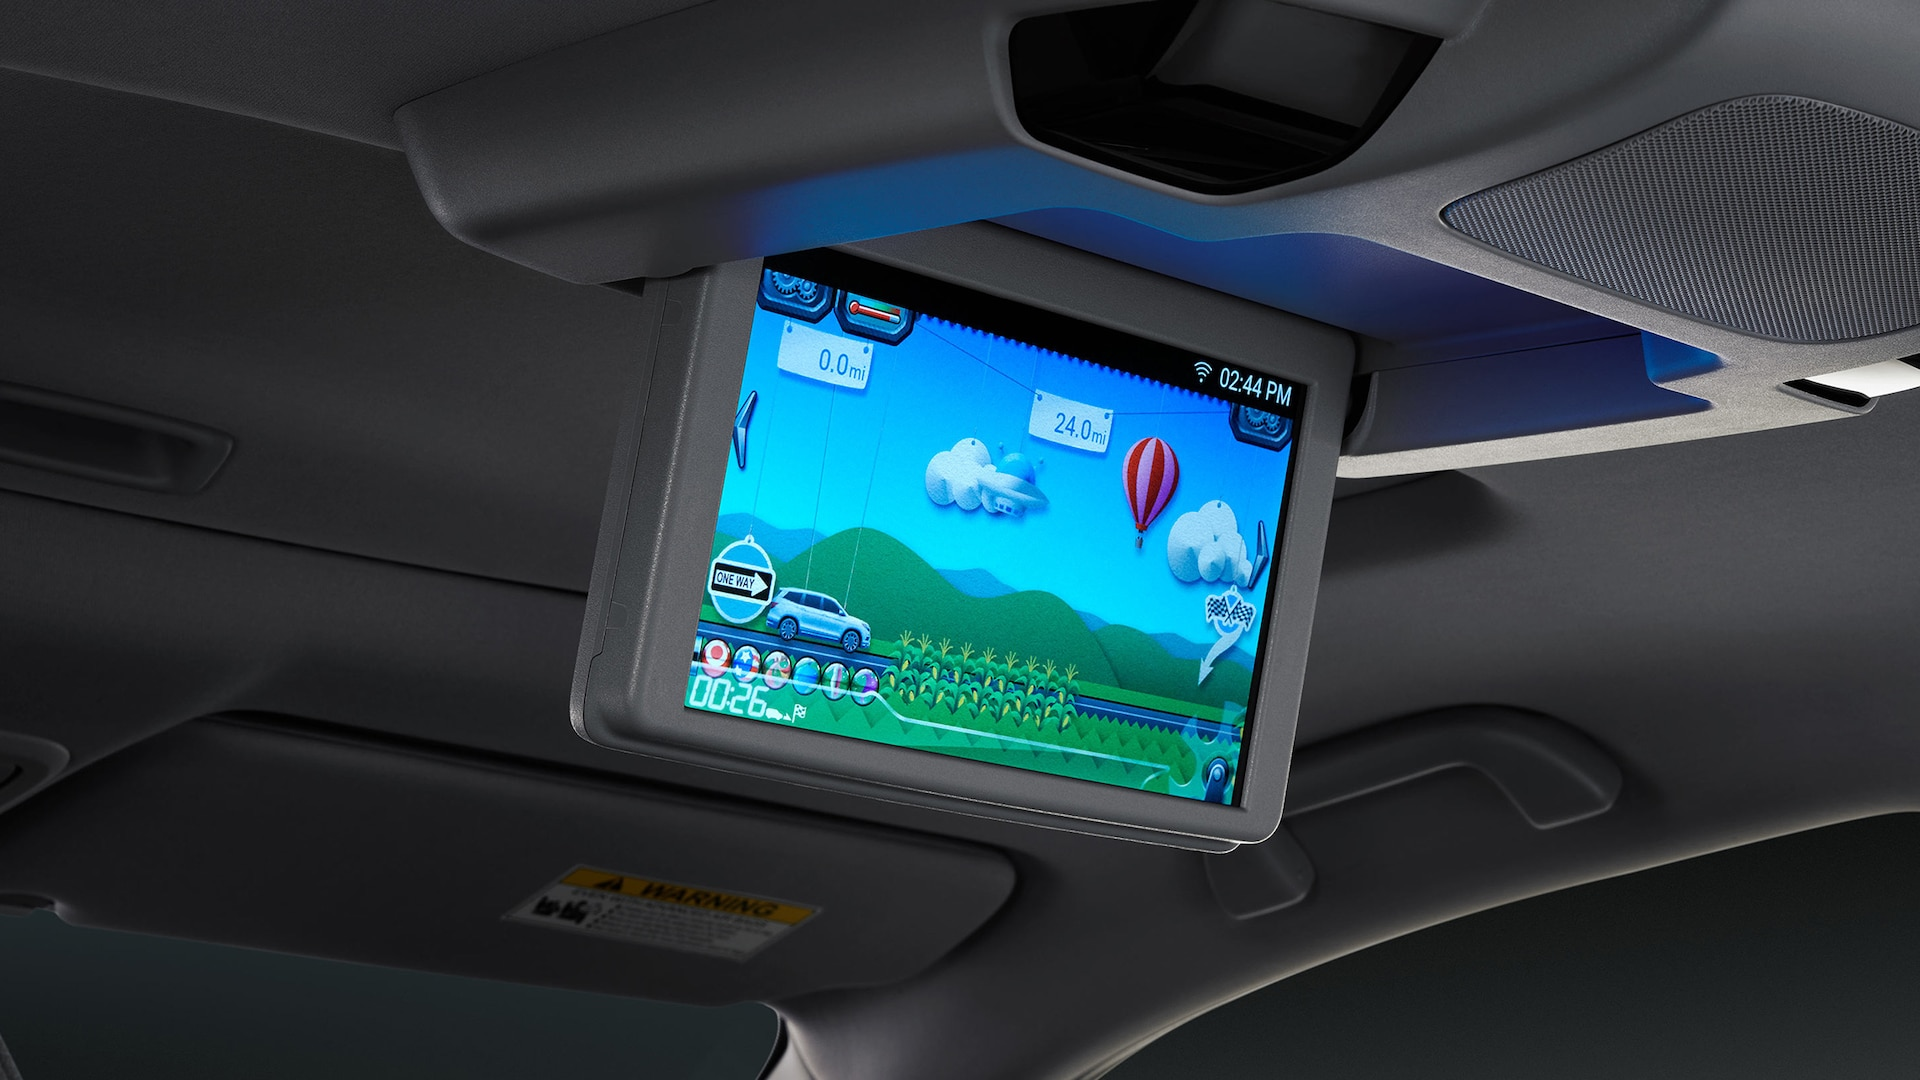 10.2-inch monitor for Advanced Rear Entertainment System detail display in 2020 Honda Pilot Elite with Gray Leather interior.